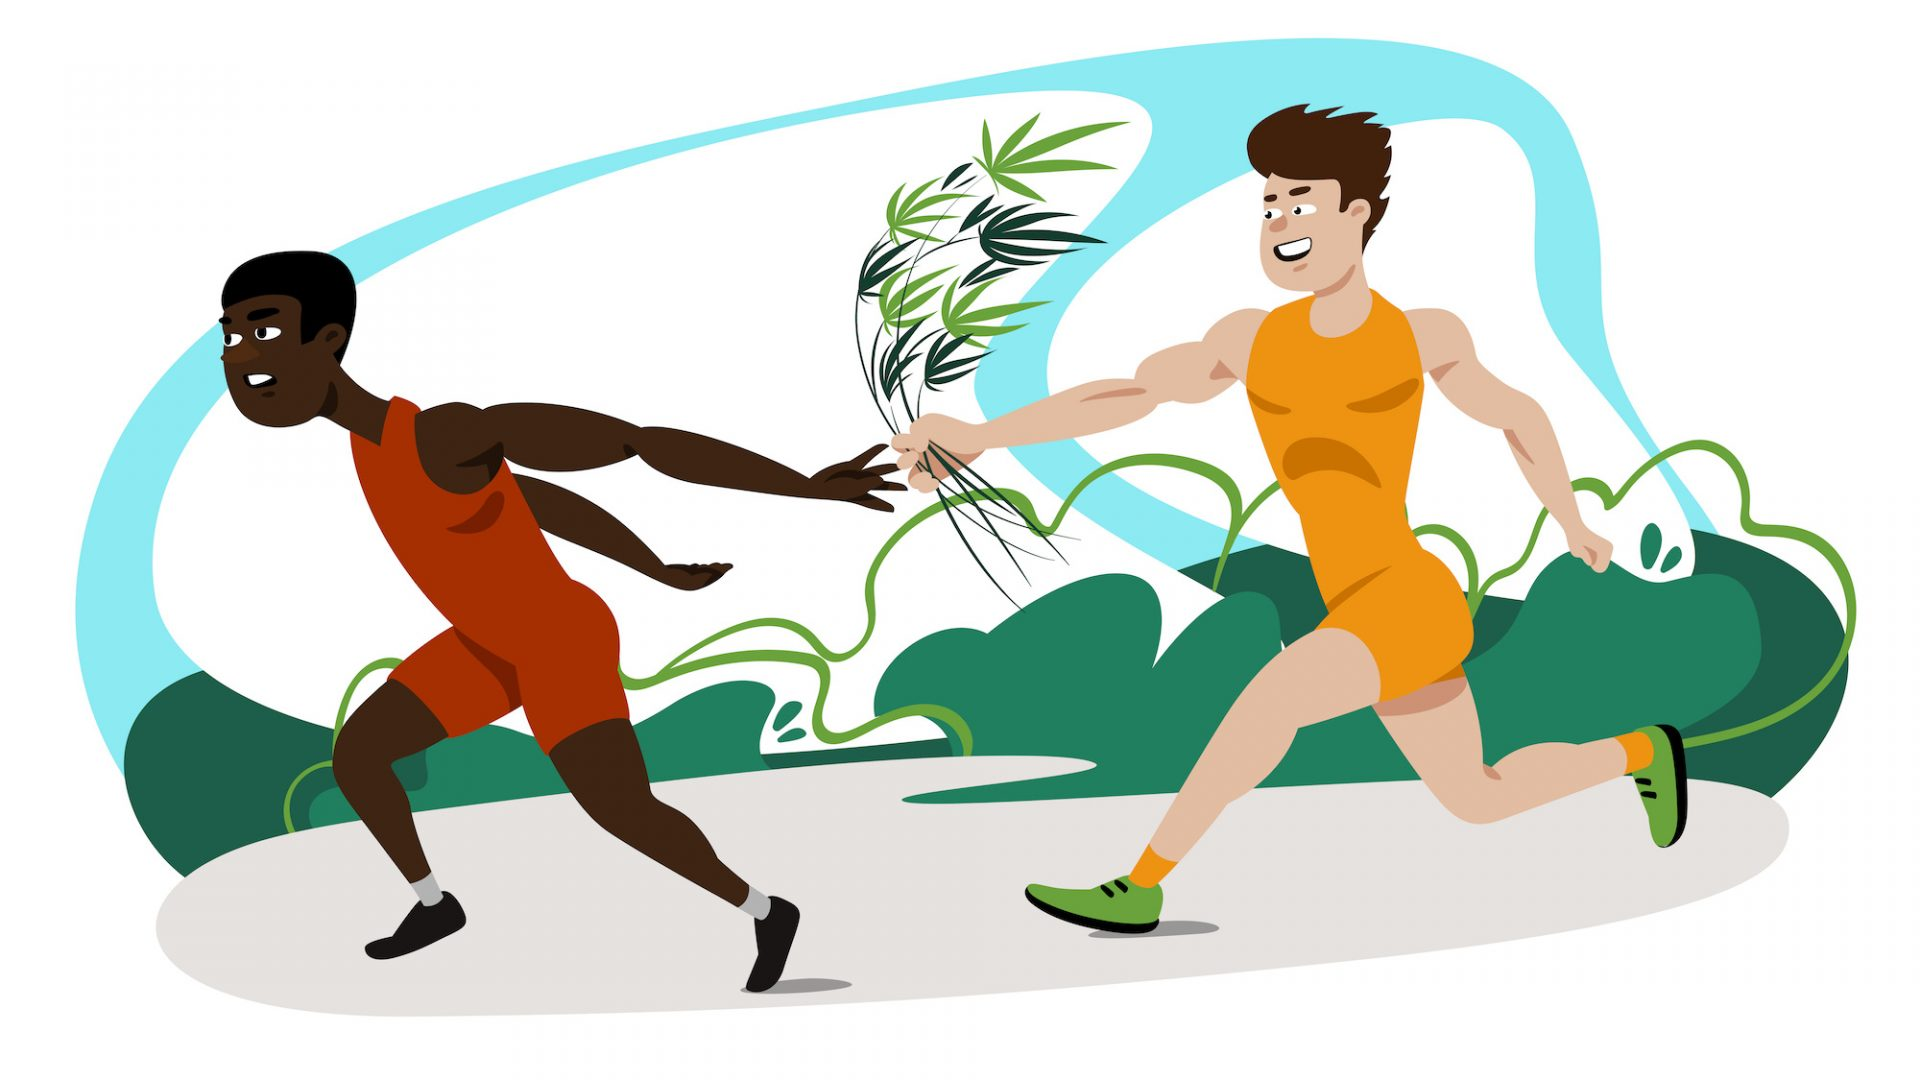 Cannabis in Pro Sports: How Does Weed Help Athletes?